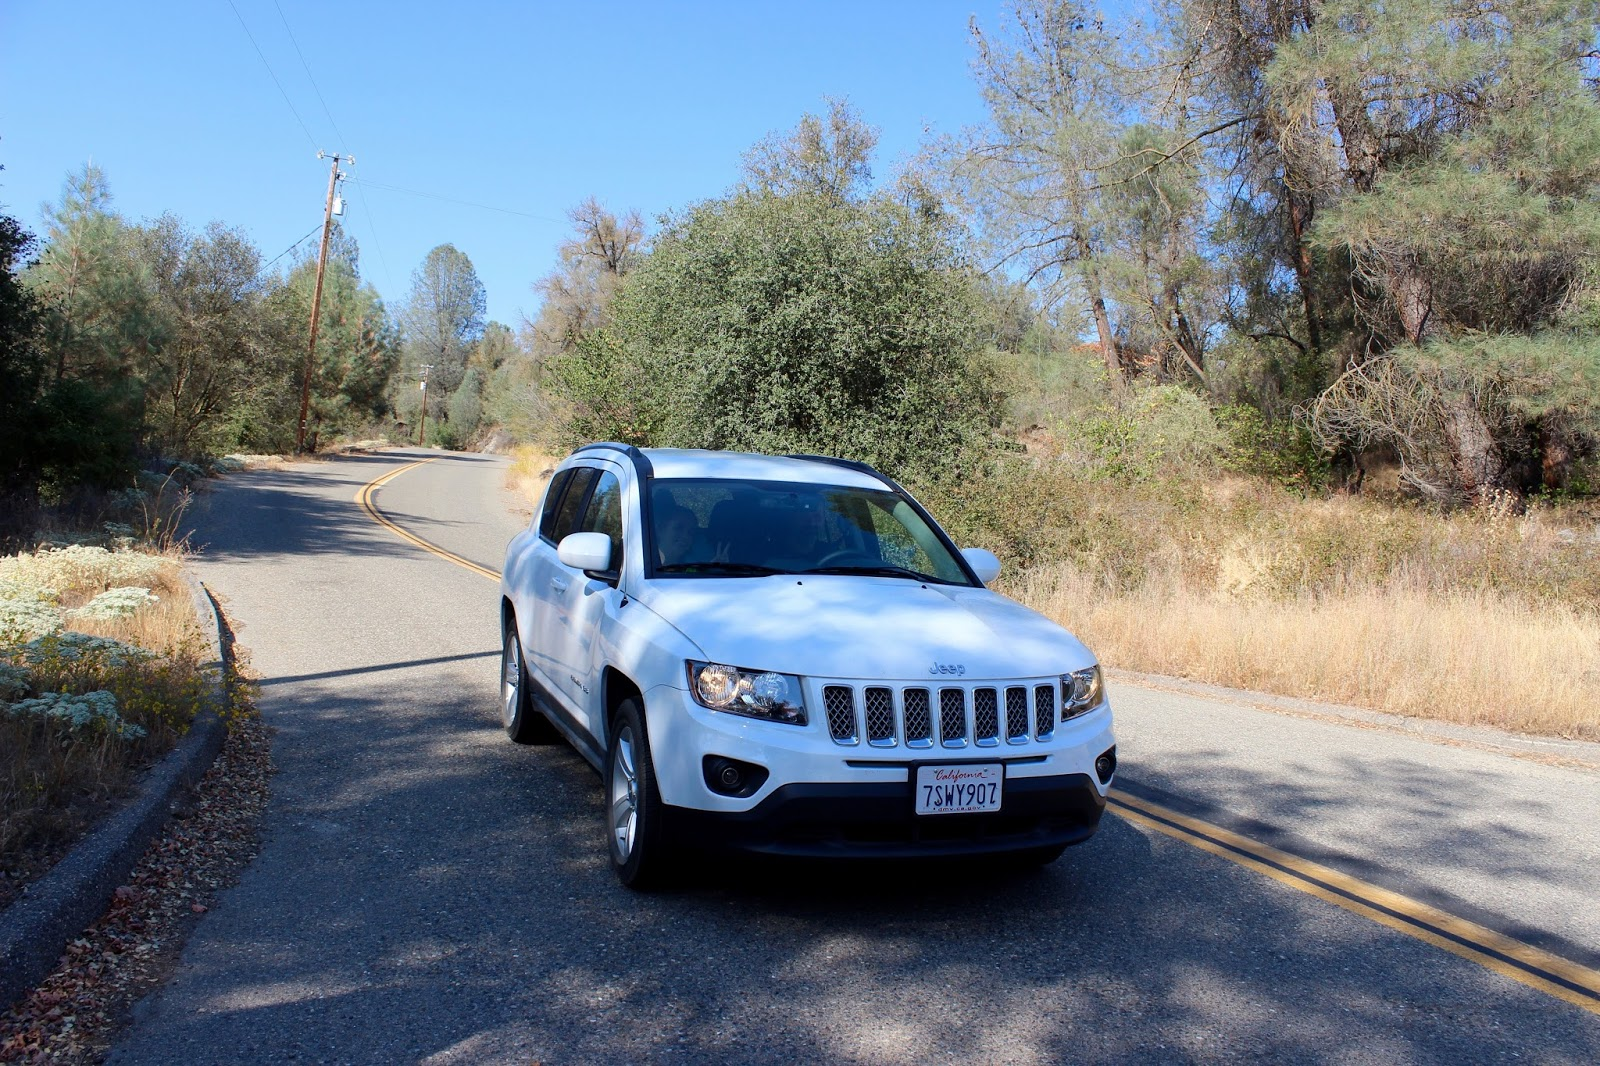 SUV rental car on road trip through California USA